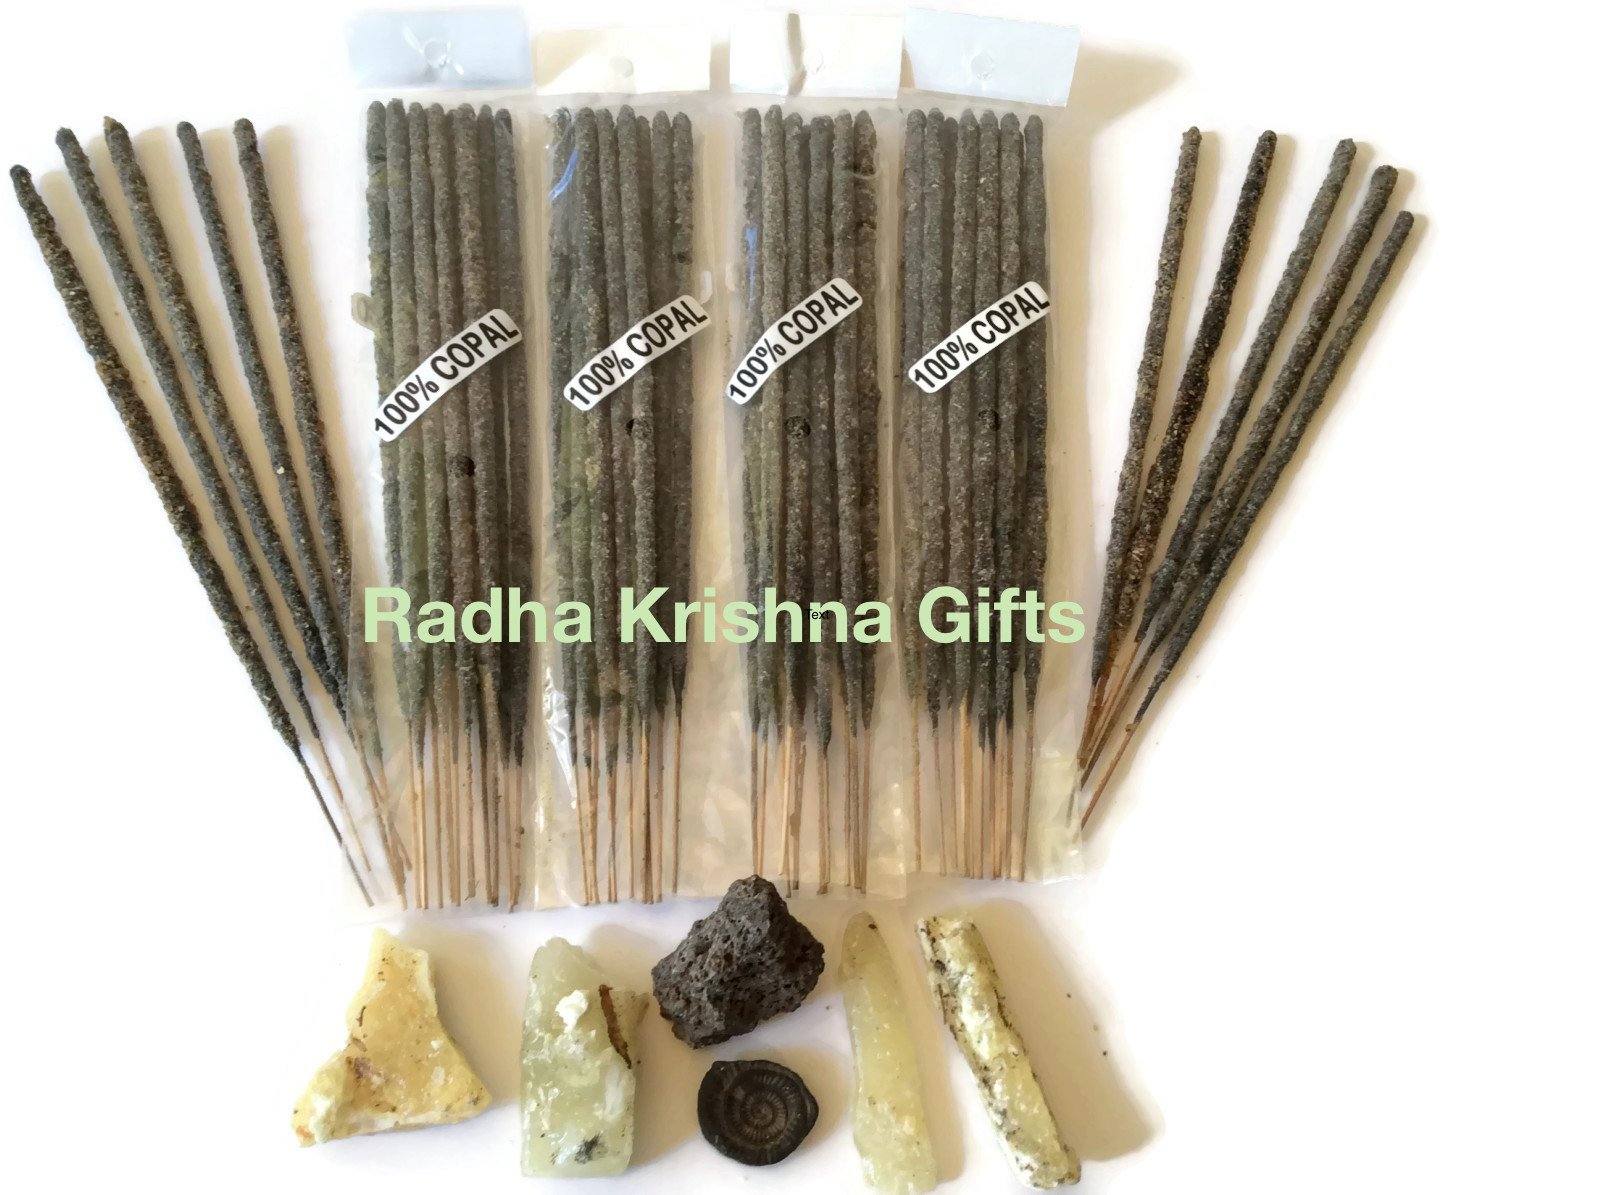 Mexican Copal Incense, 2,000 Sticks Handmade in Mexico with Authentic Copal Resin.